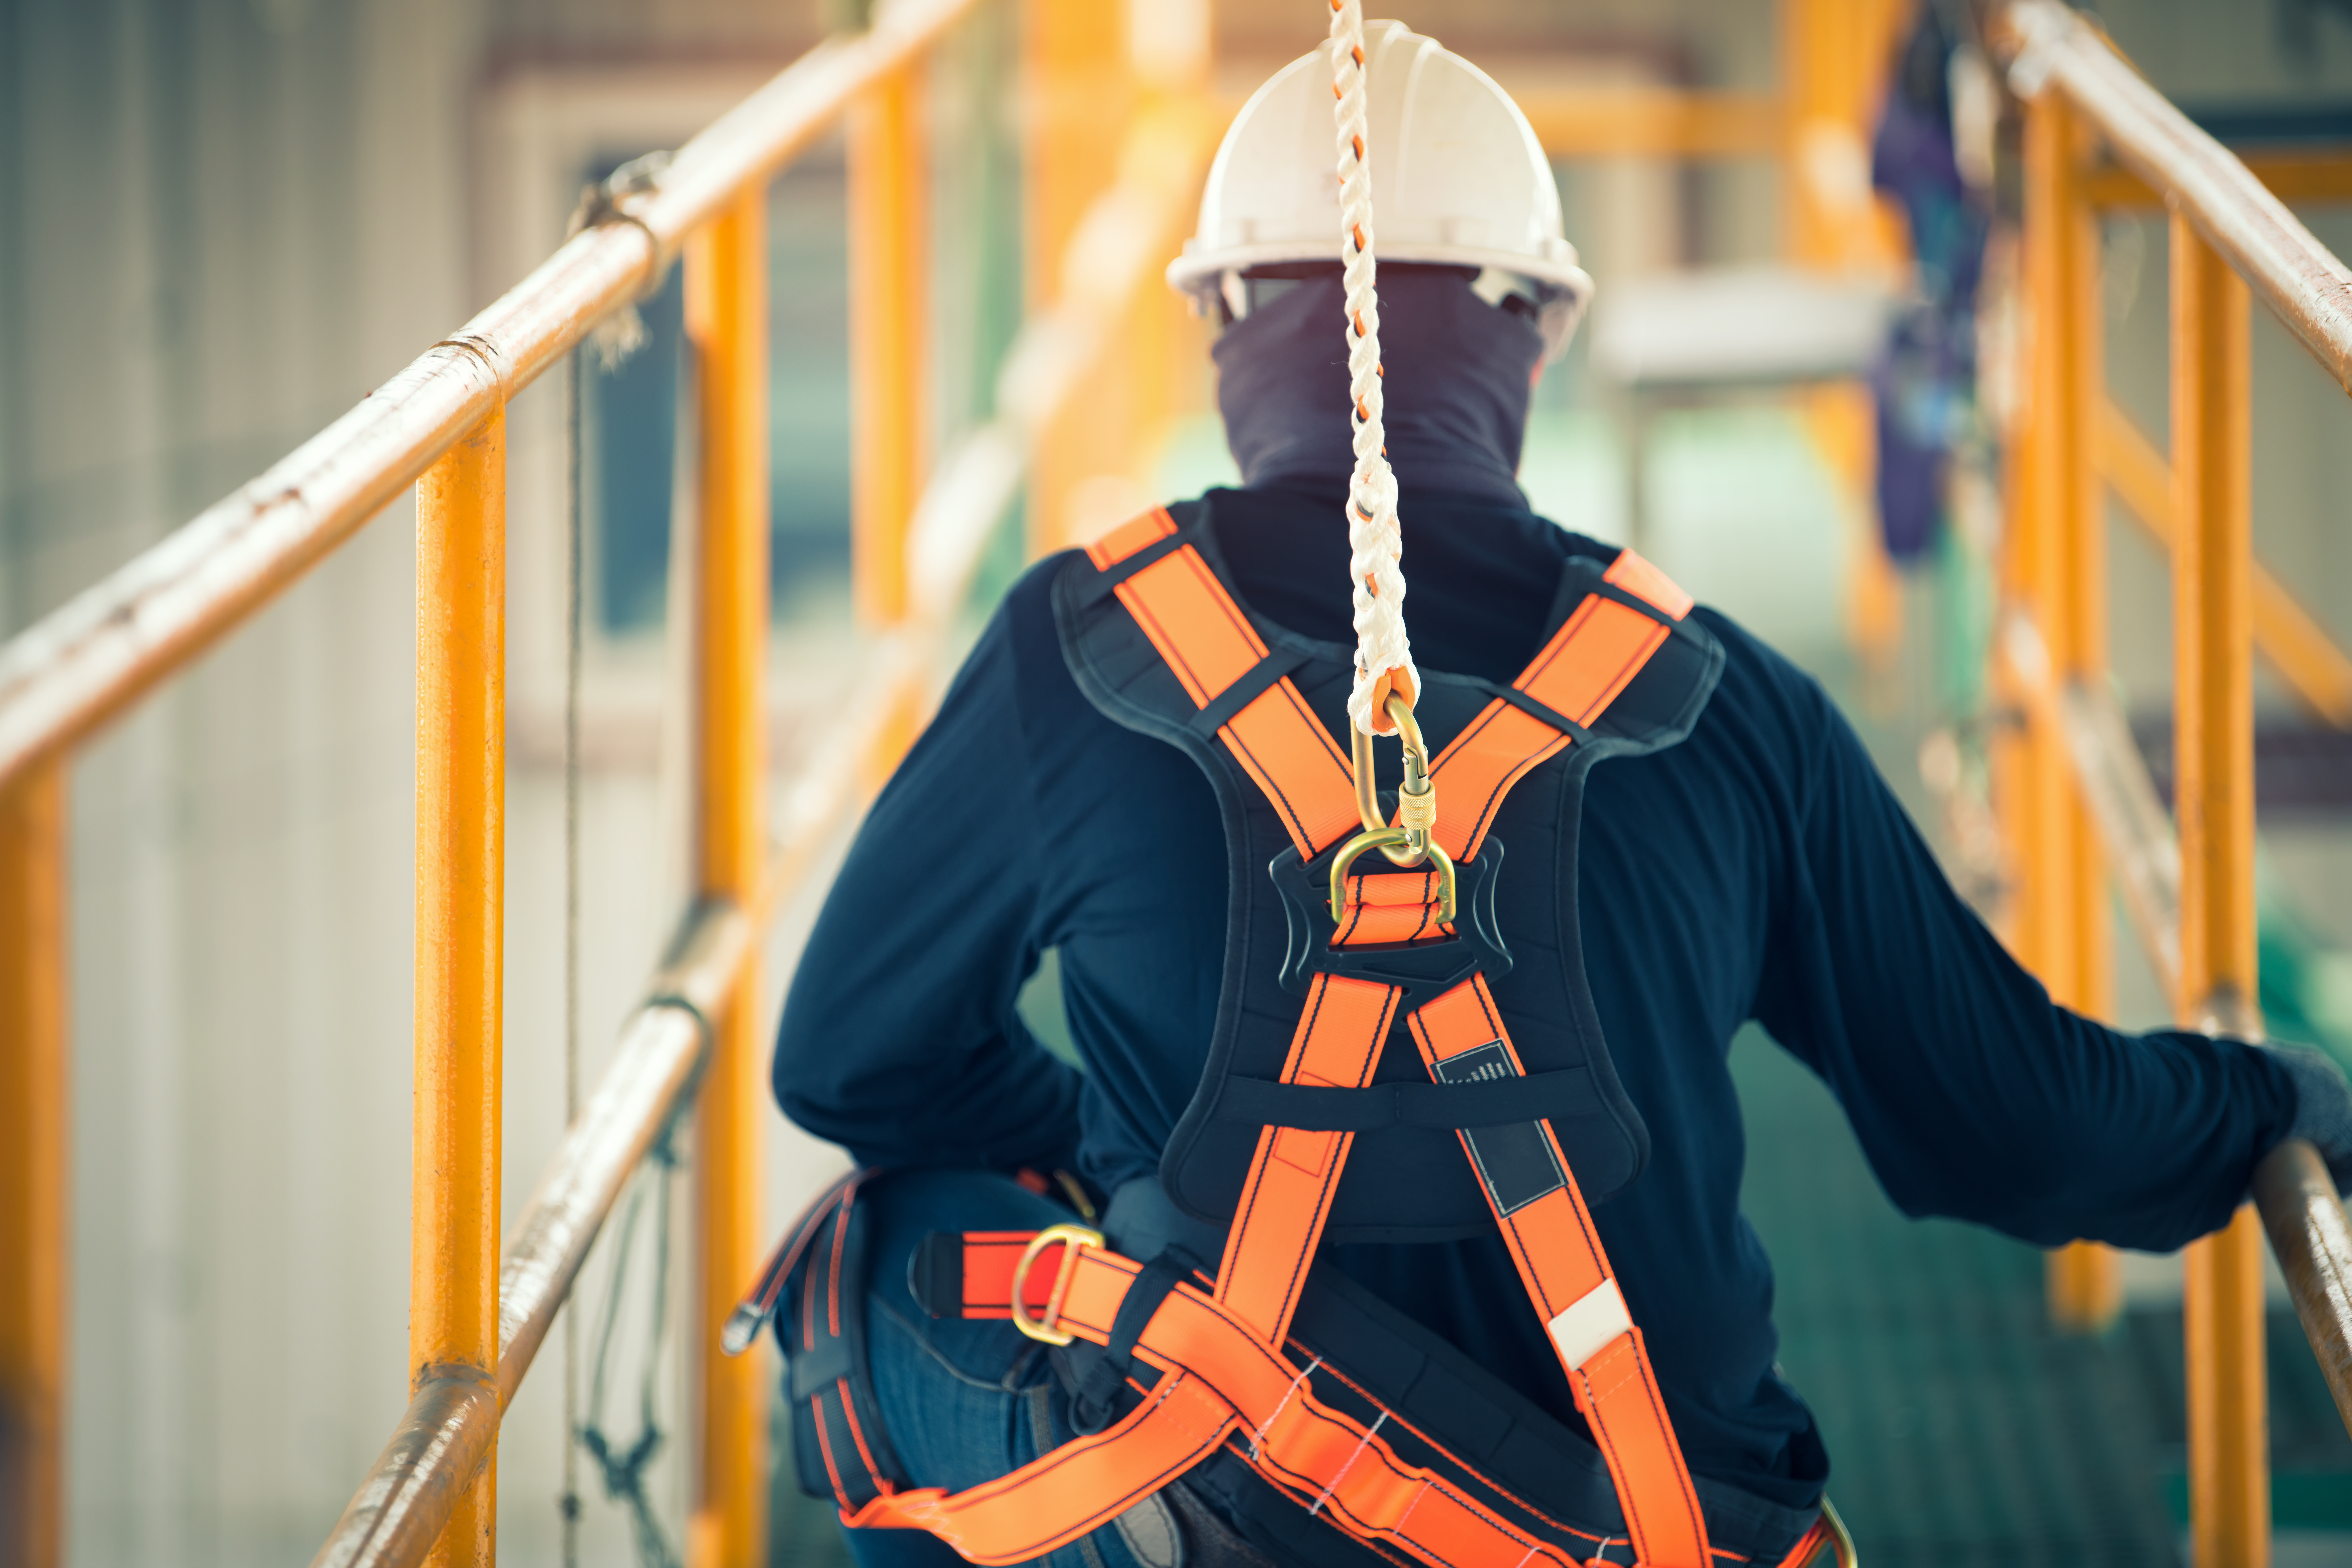 Construction worker following safety management plan wearing harness at heights